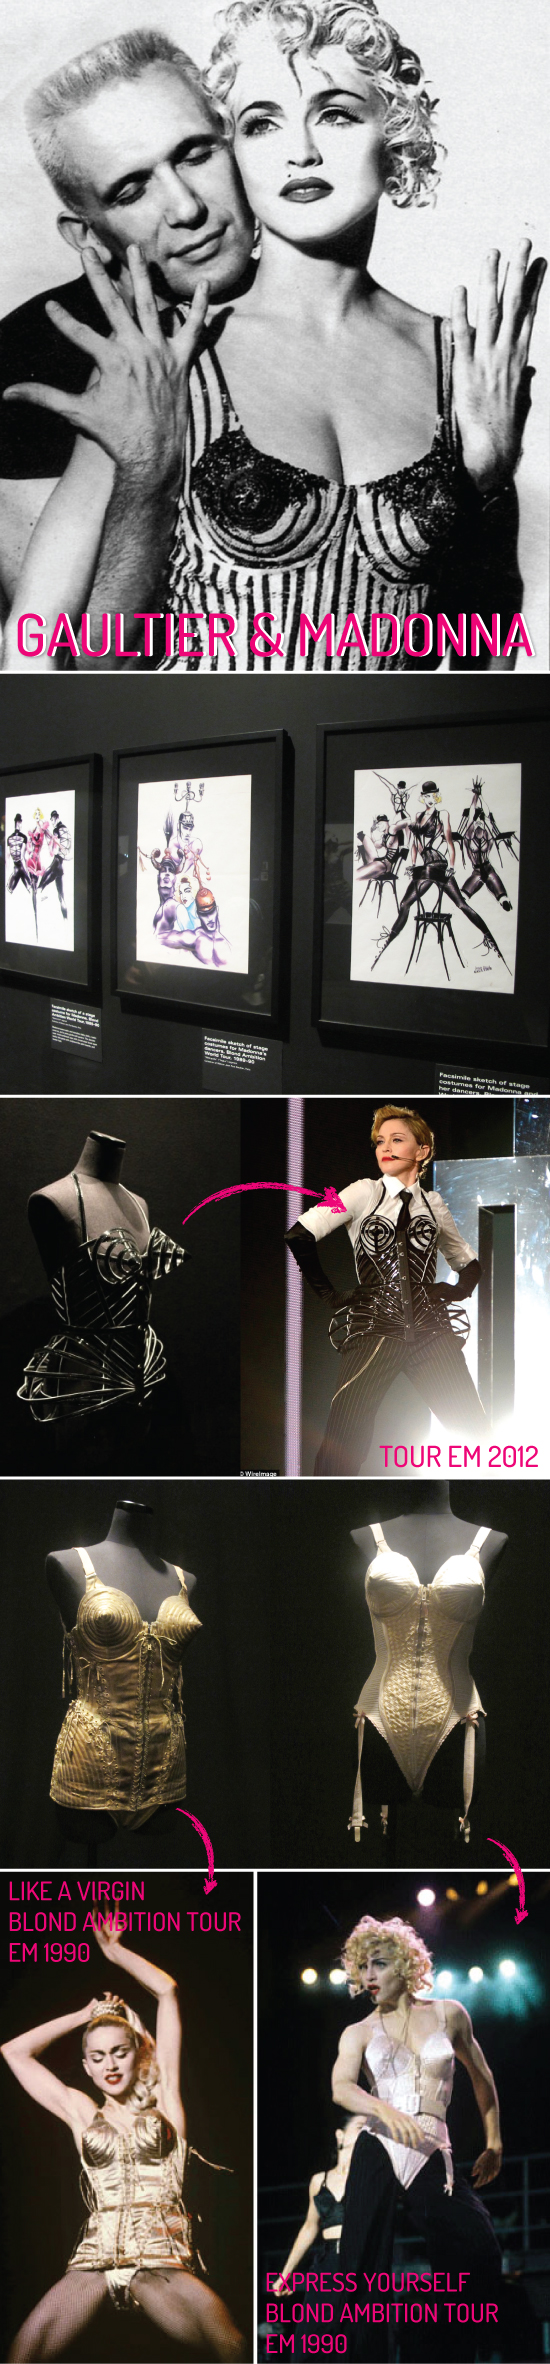 JEAN-PAUL-GAULTIER-EXPO-EXPOSICAO-NY-NEW-YORK-VIAGEM-BROOKLYN-MUSEUM-MODA-FASHION-madonna